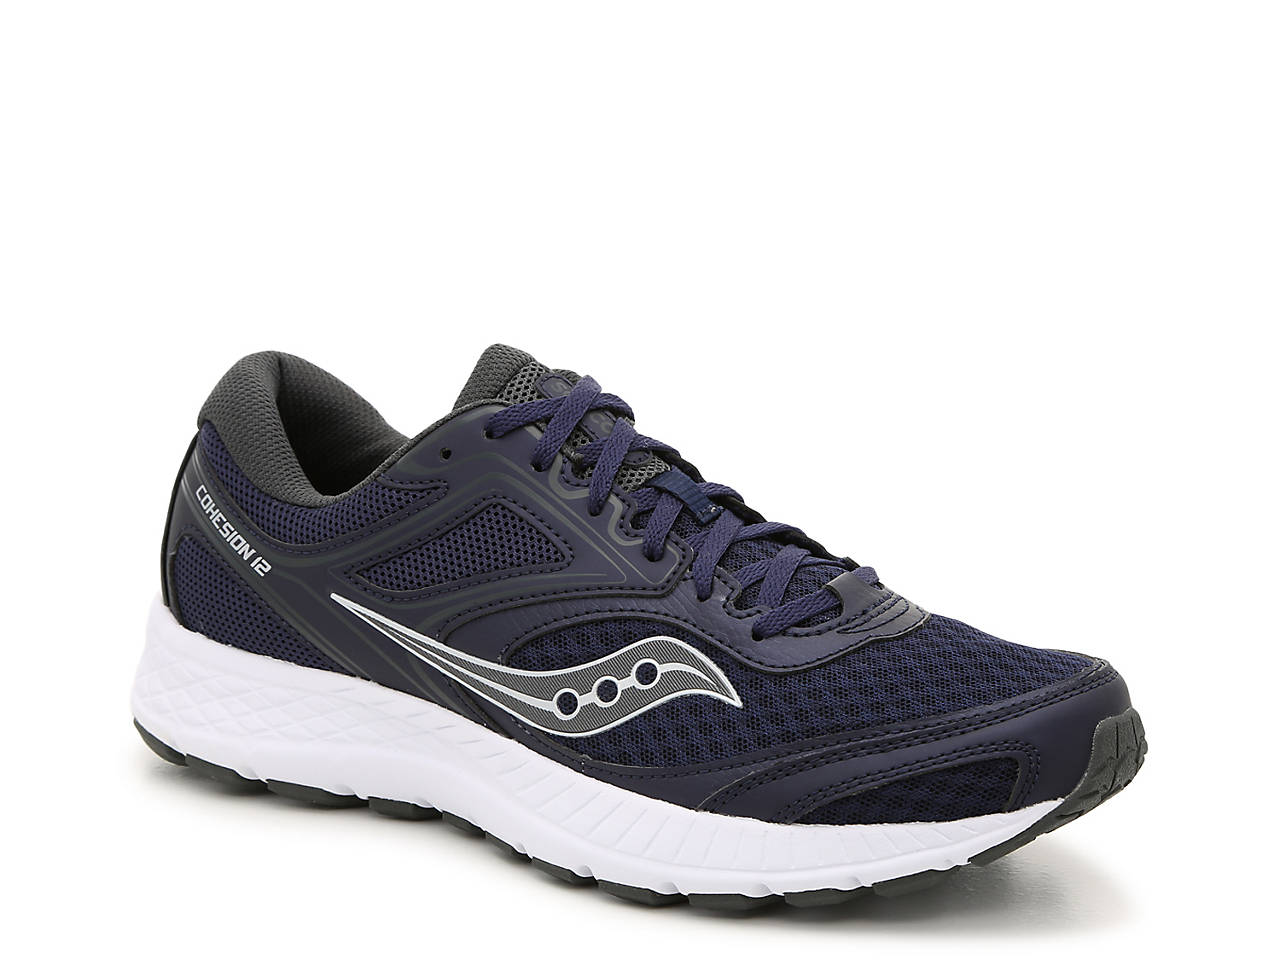 Cohesion 12 Lightweight Running Shoe Men's